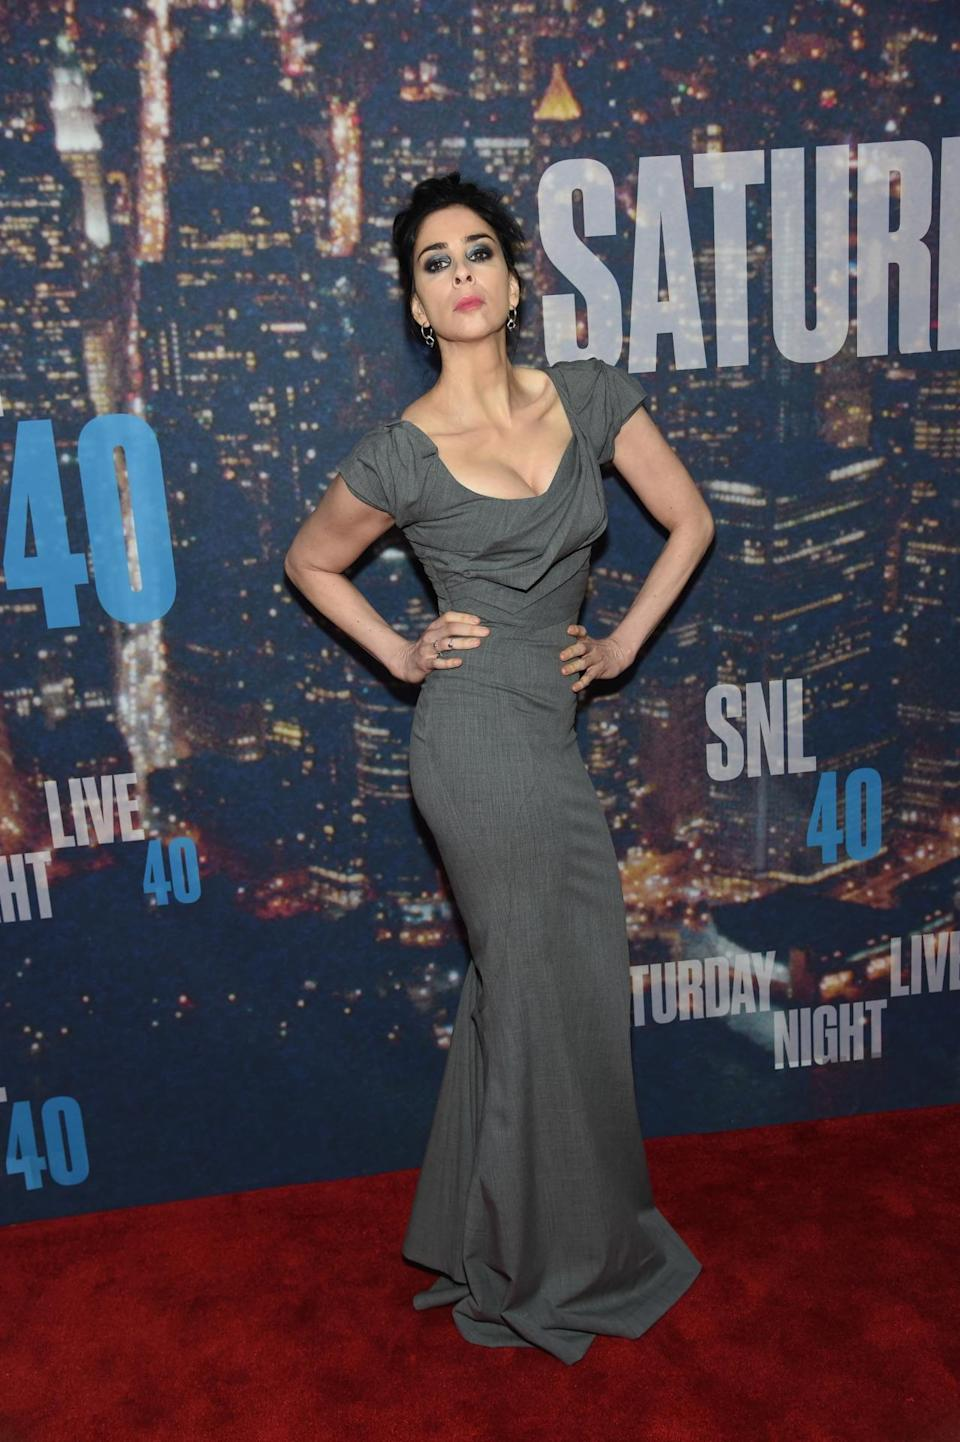 People weren't just laughing inside, Sarah Silverman had the step-and-repeat in stiches with her funny poses.